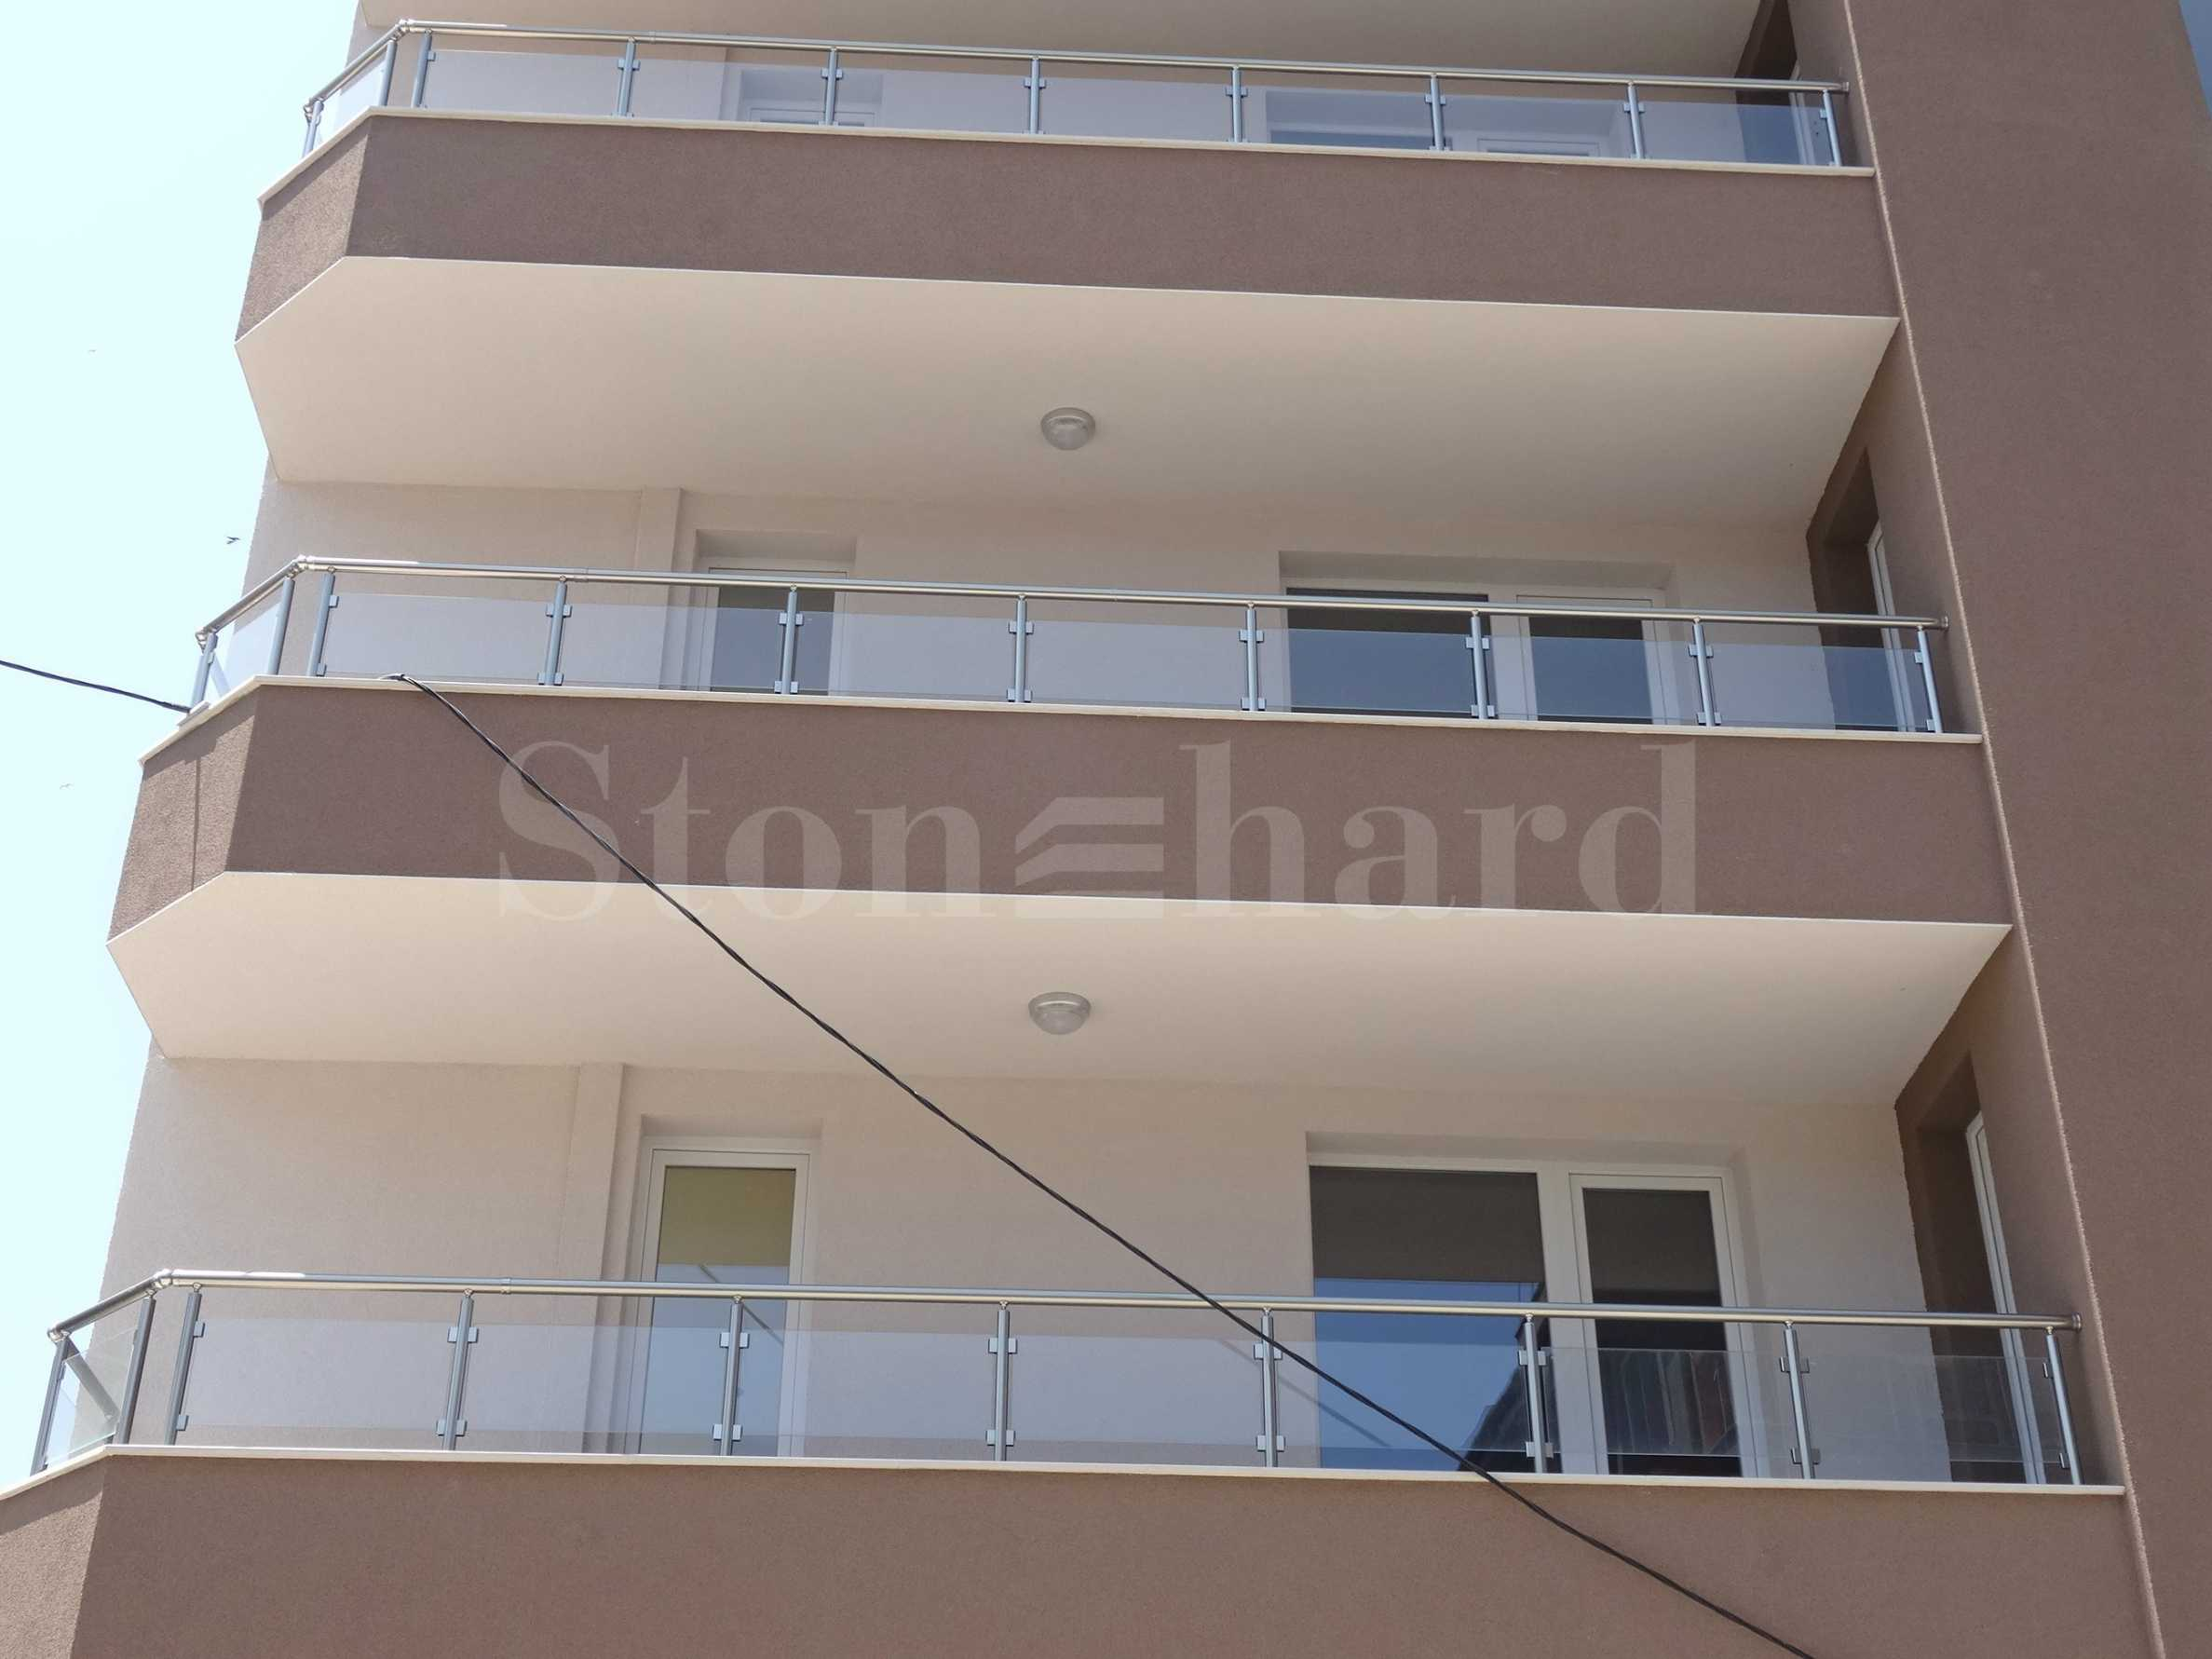 New development in the preferred area in Varna, Bulgaria2 - Stonehard